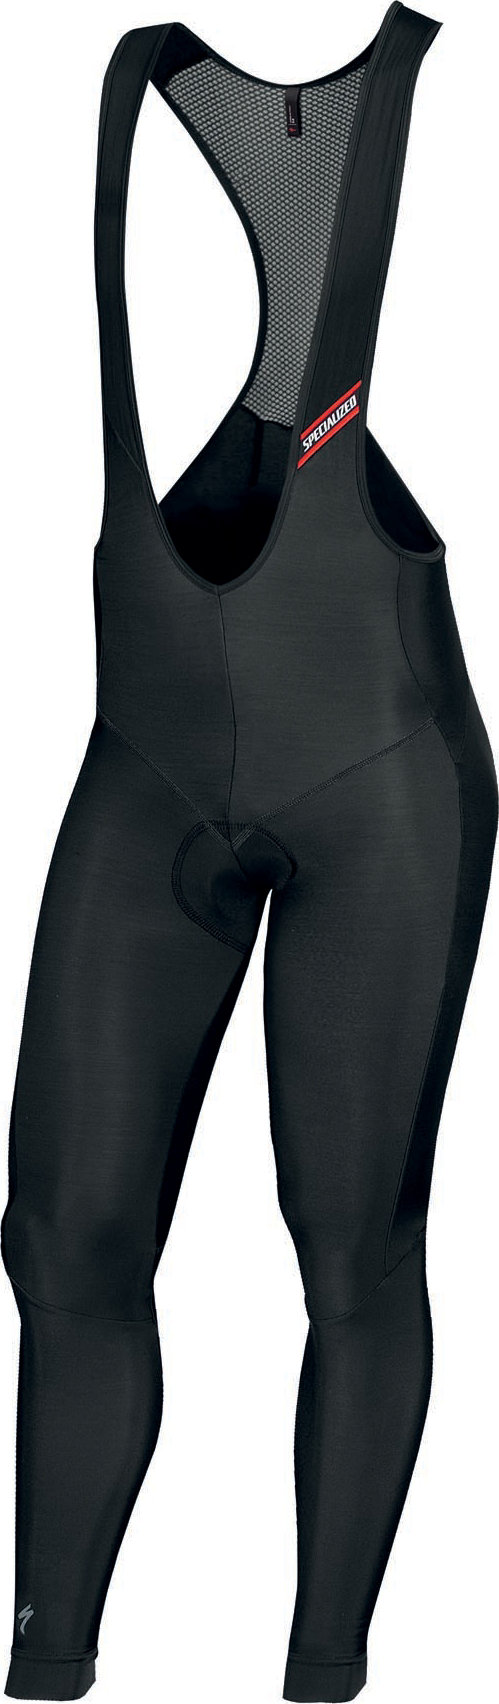 SPECIALIZED THERMINAL RBX COMP CYCLING BIB TIGHT BLK M - Alpha Bikes